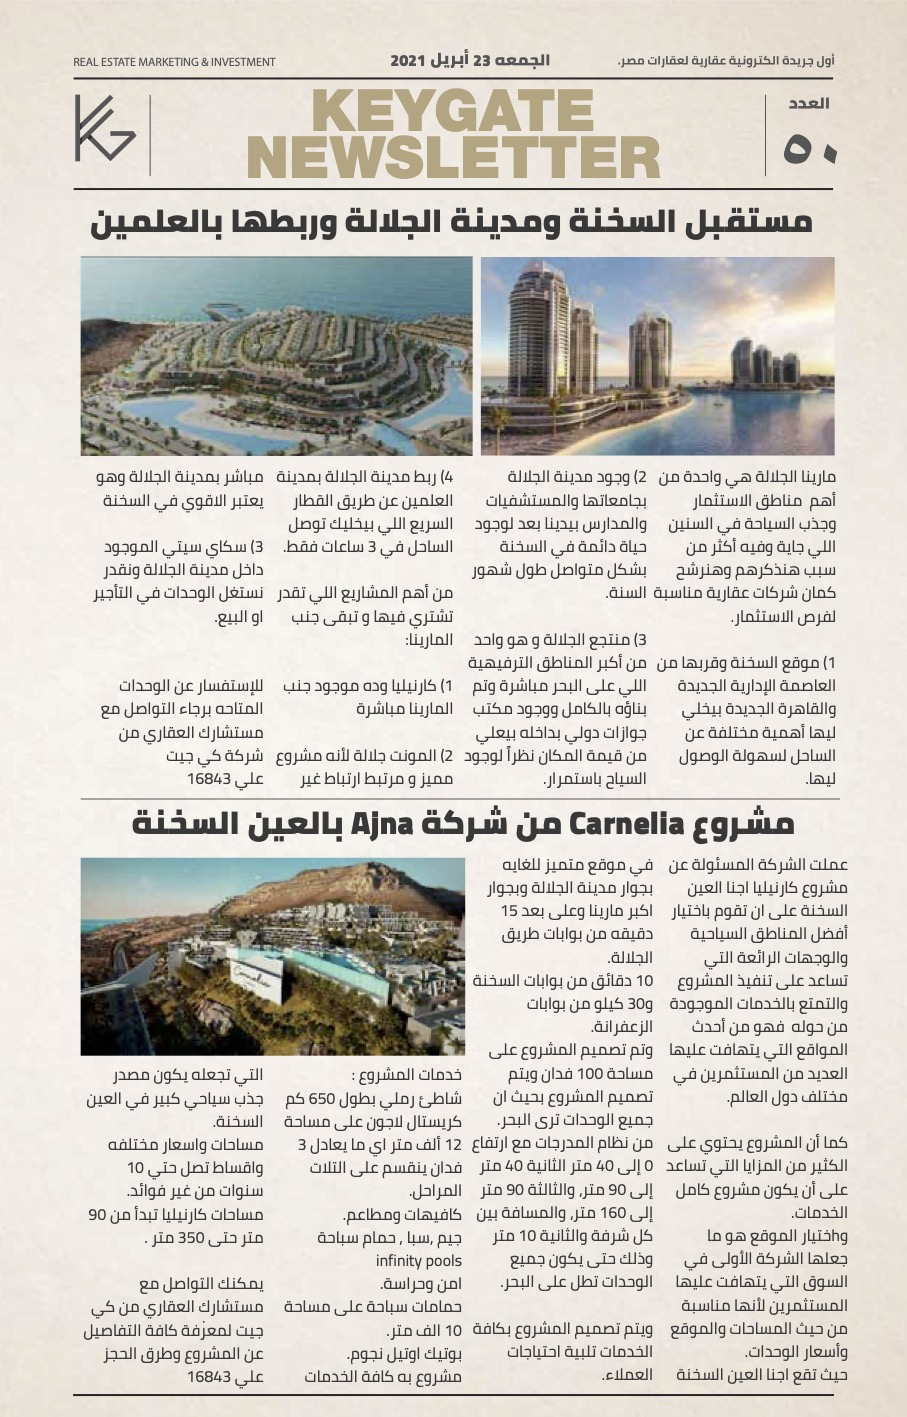 KeyGate Real Estate' Newspaper23:4:2021